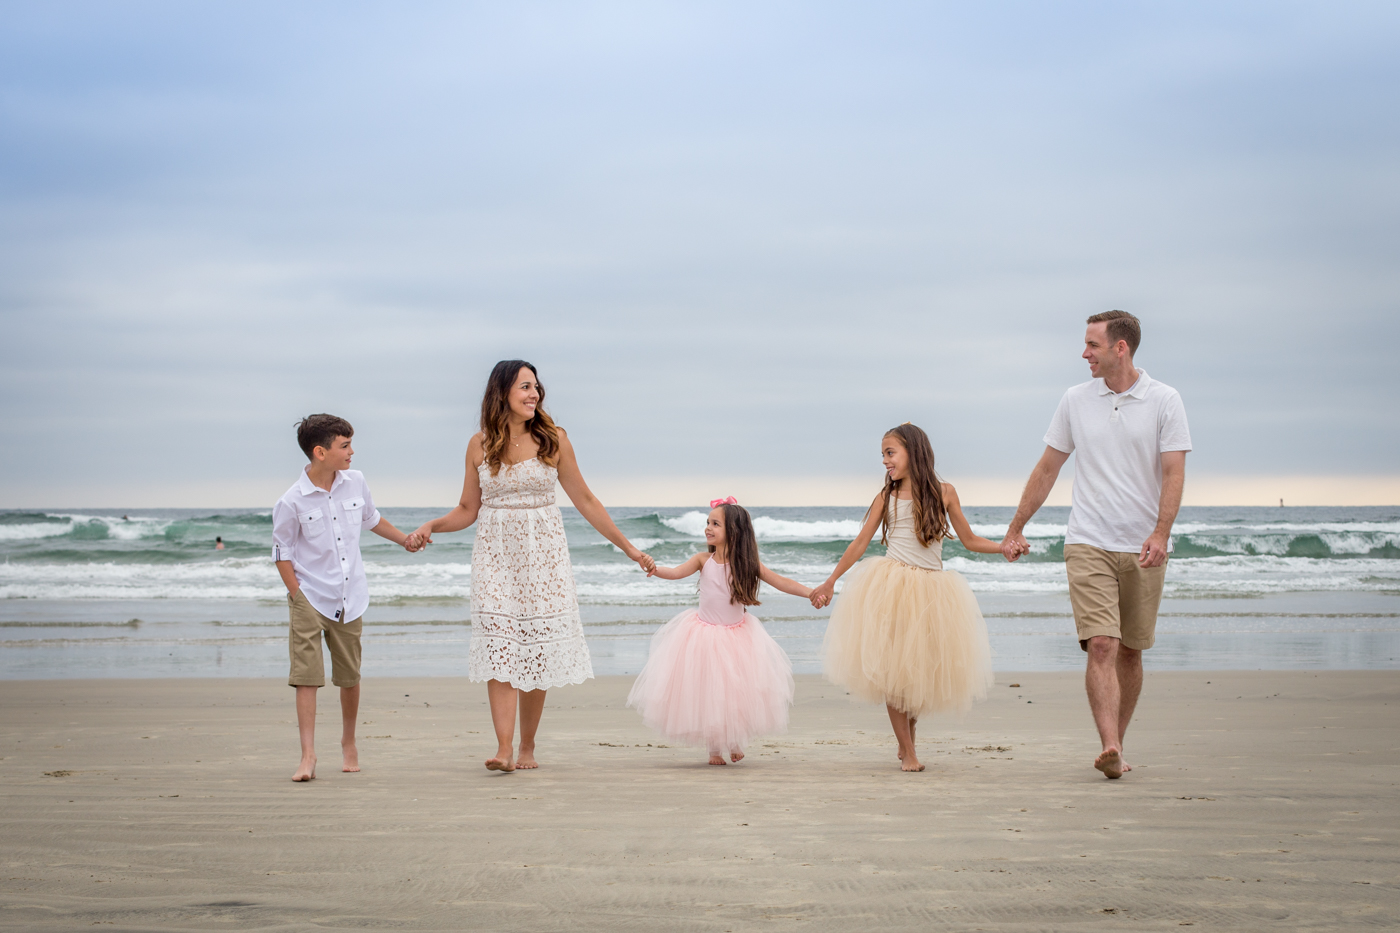 Oceanside beach family photo